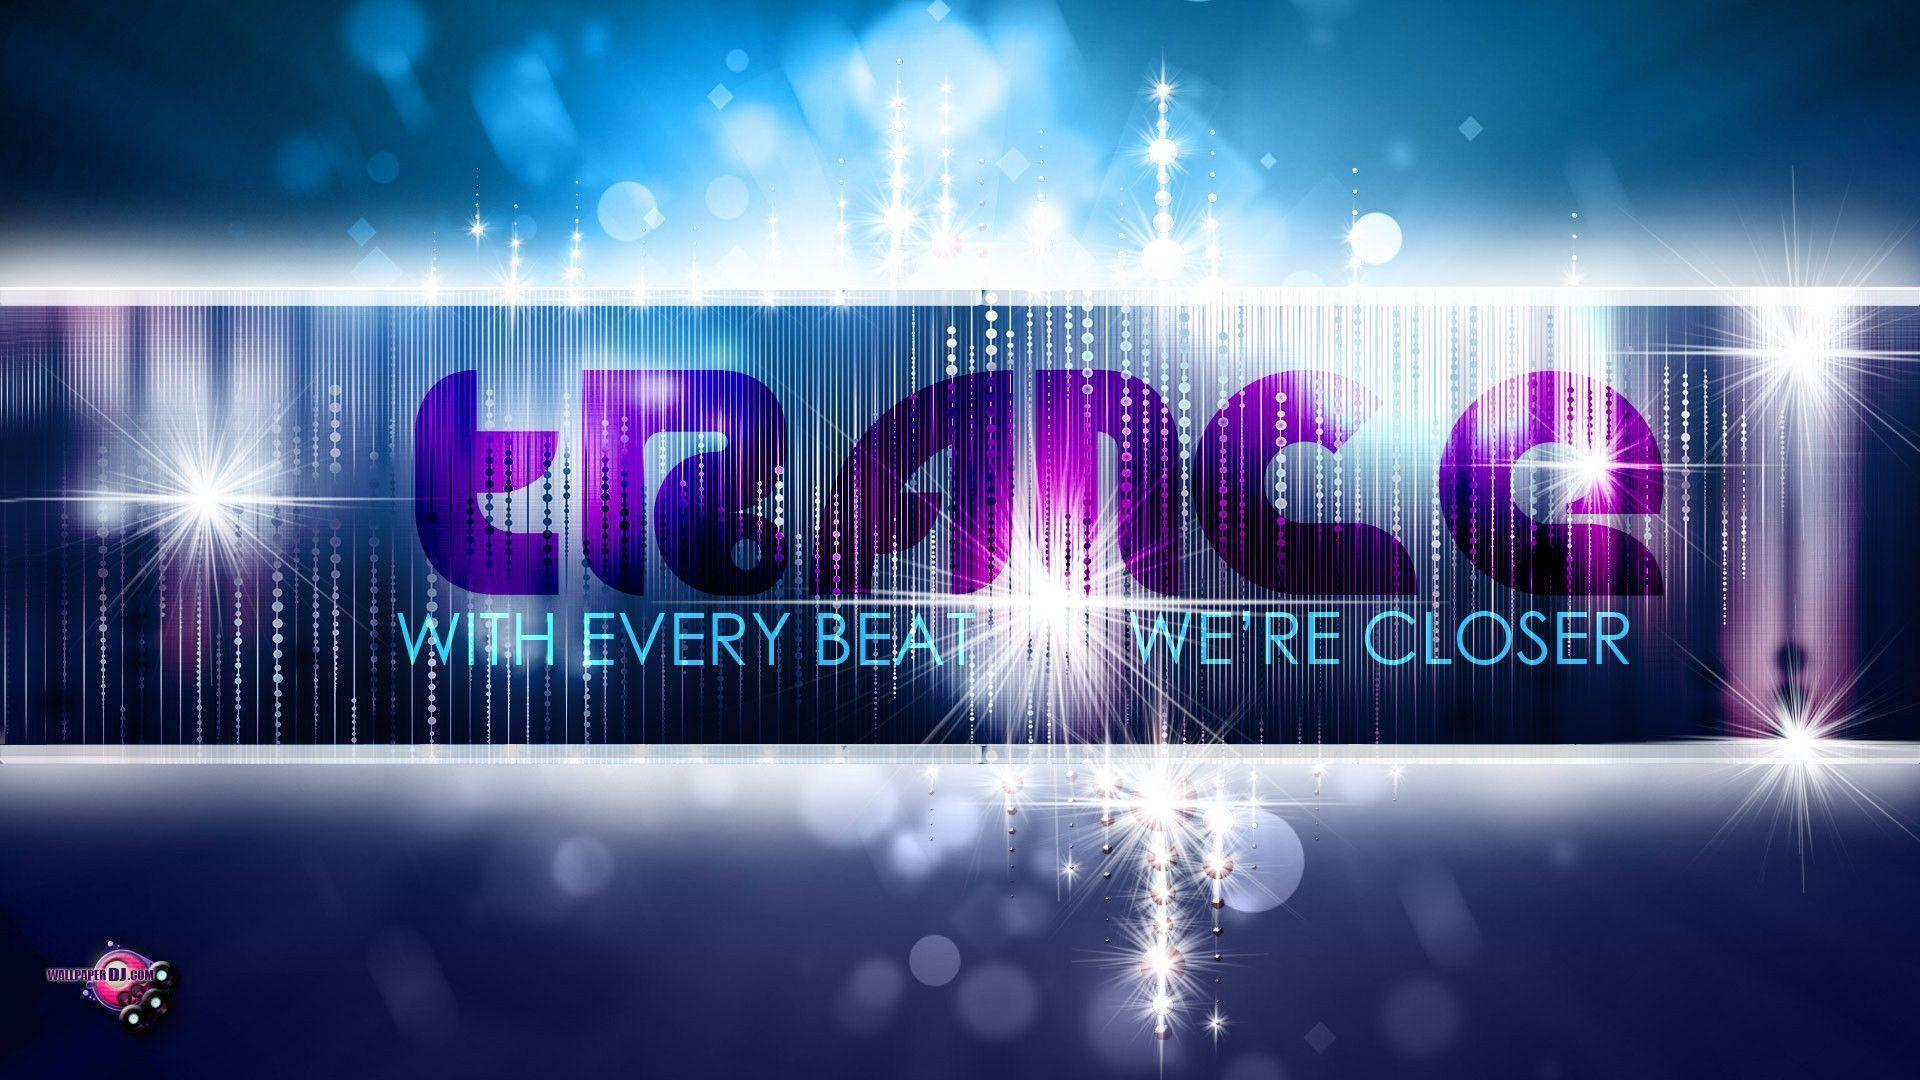 wallpapers trance wallpaper - photo #16